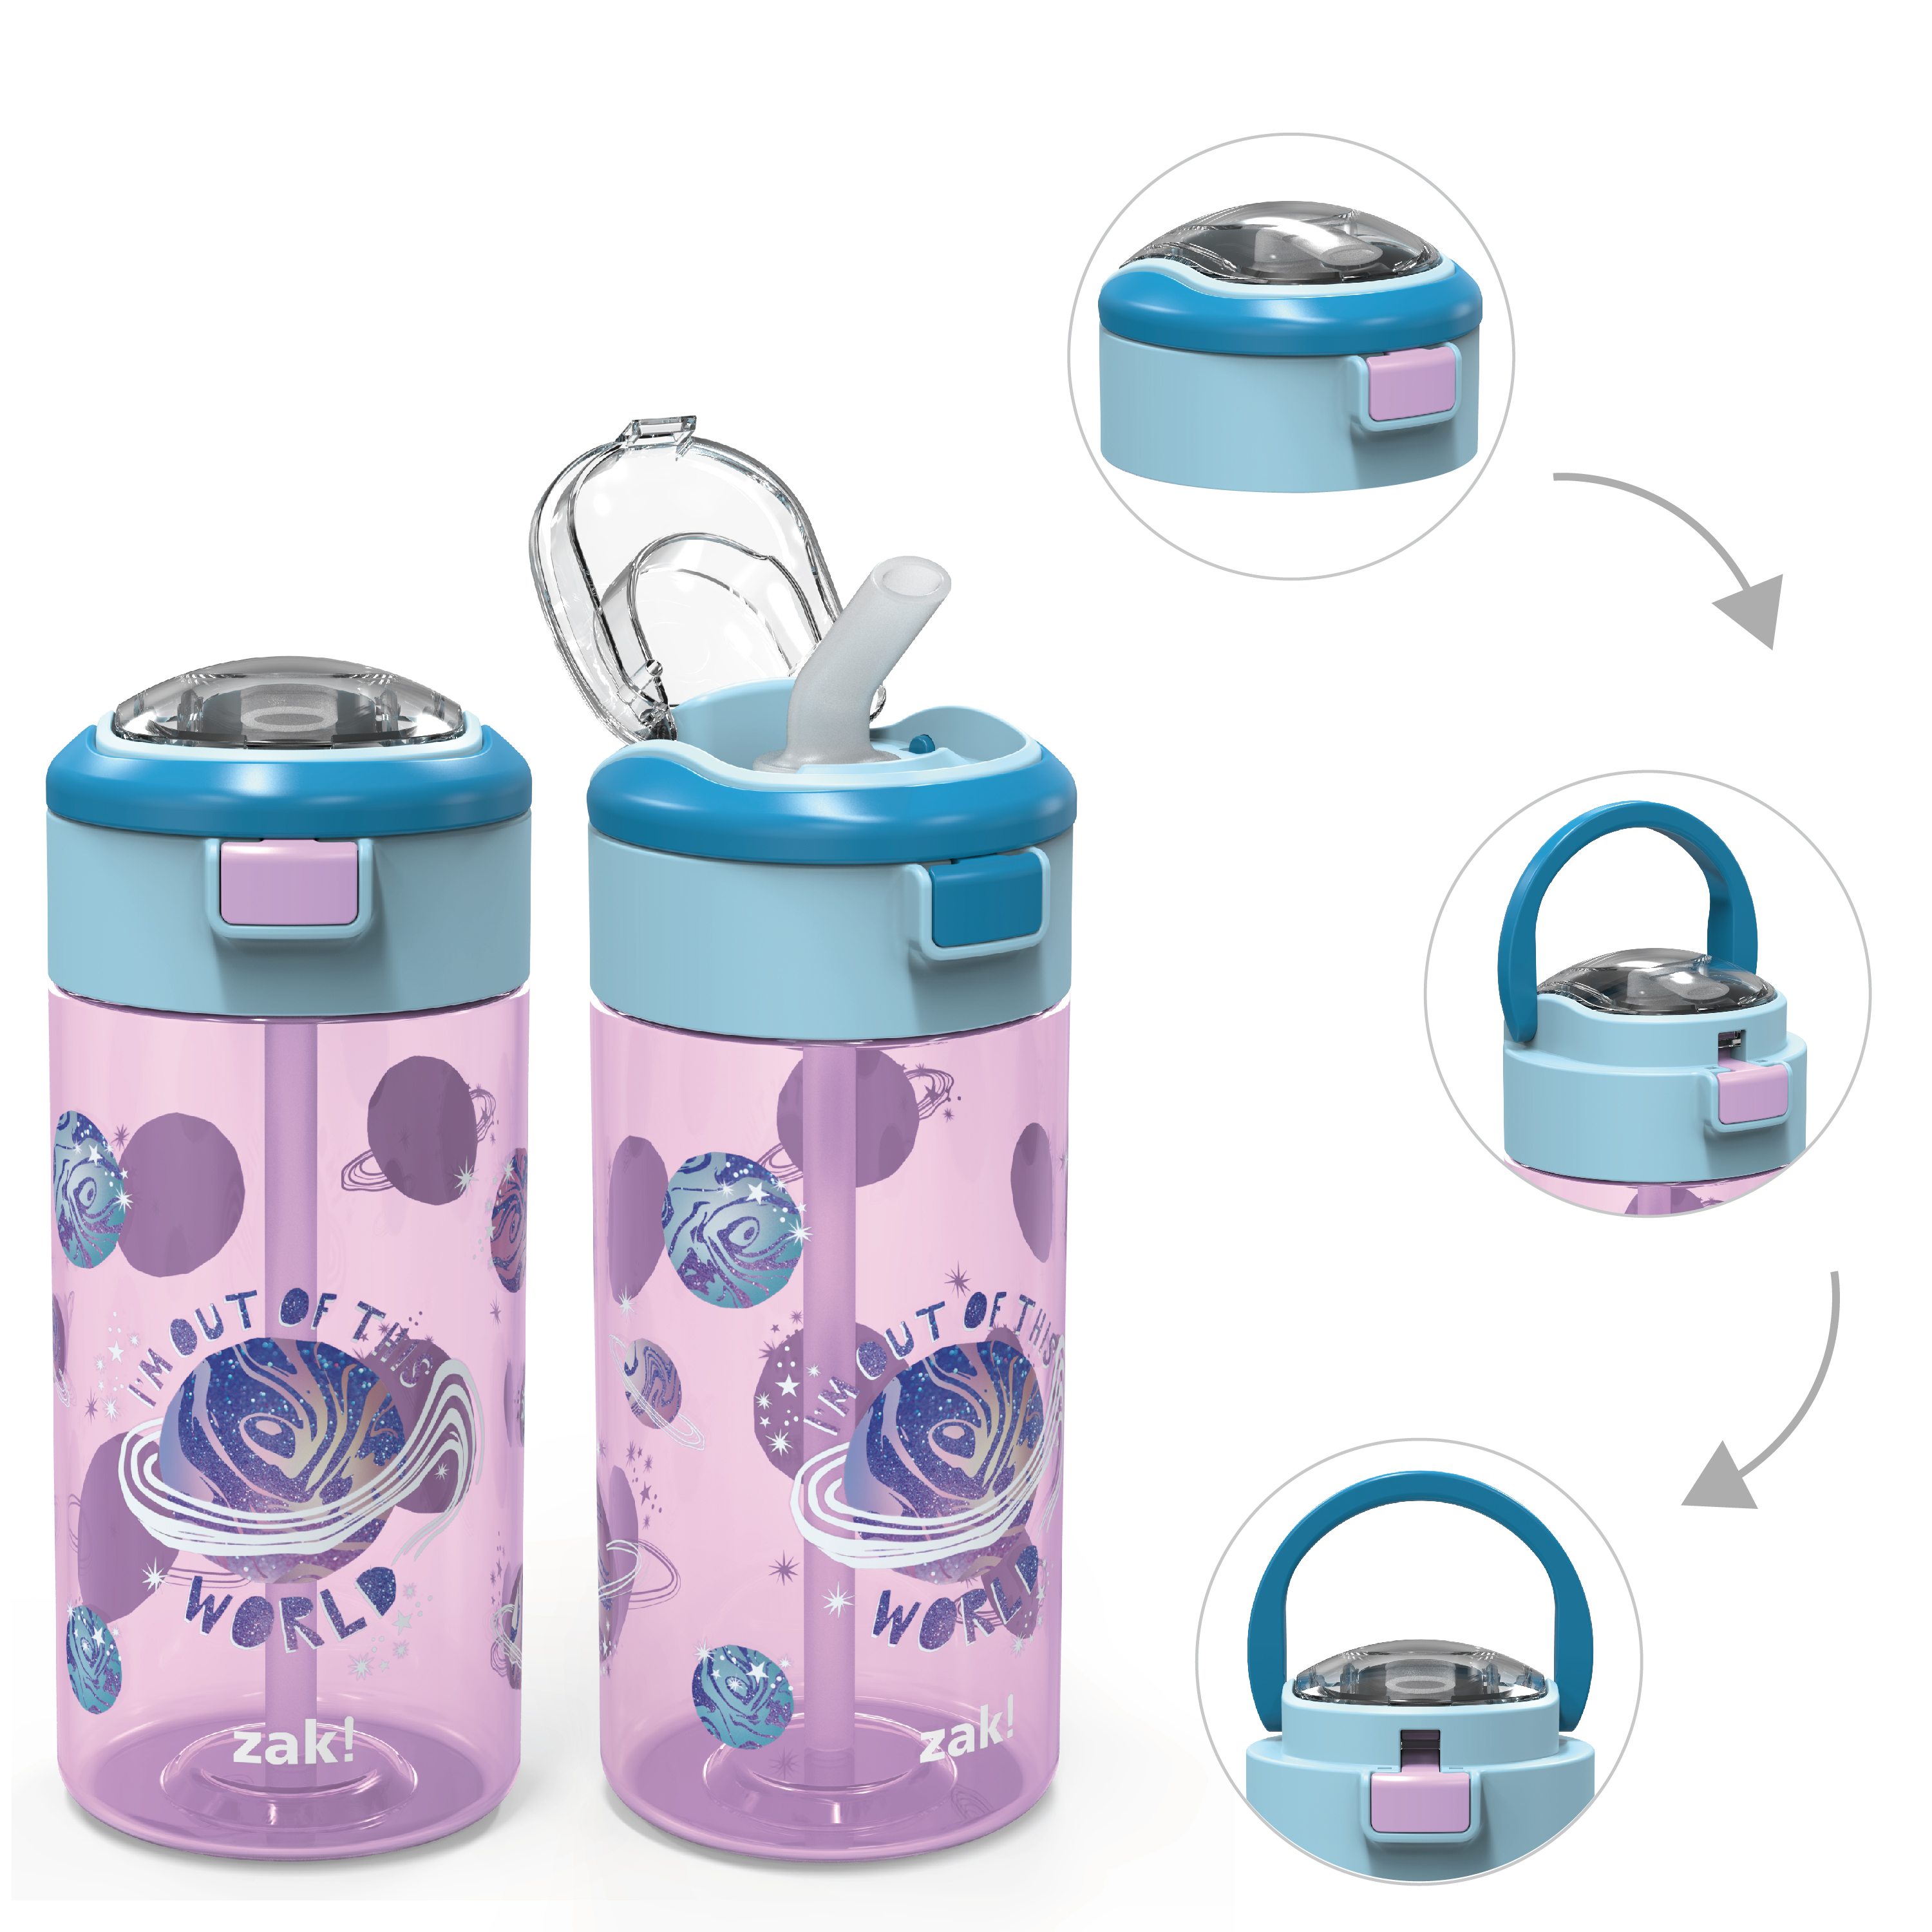 Genesis 18 ounce Water Bottles, Planet, 2-piece set slideshow image 2